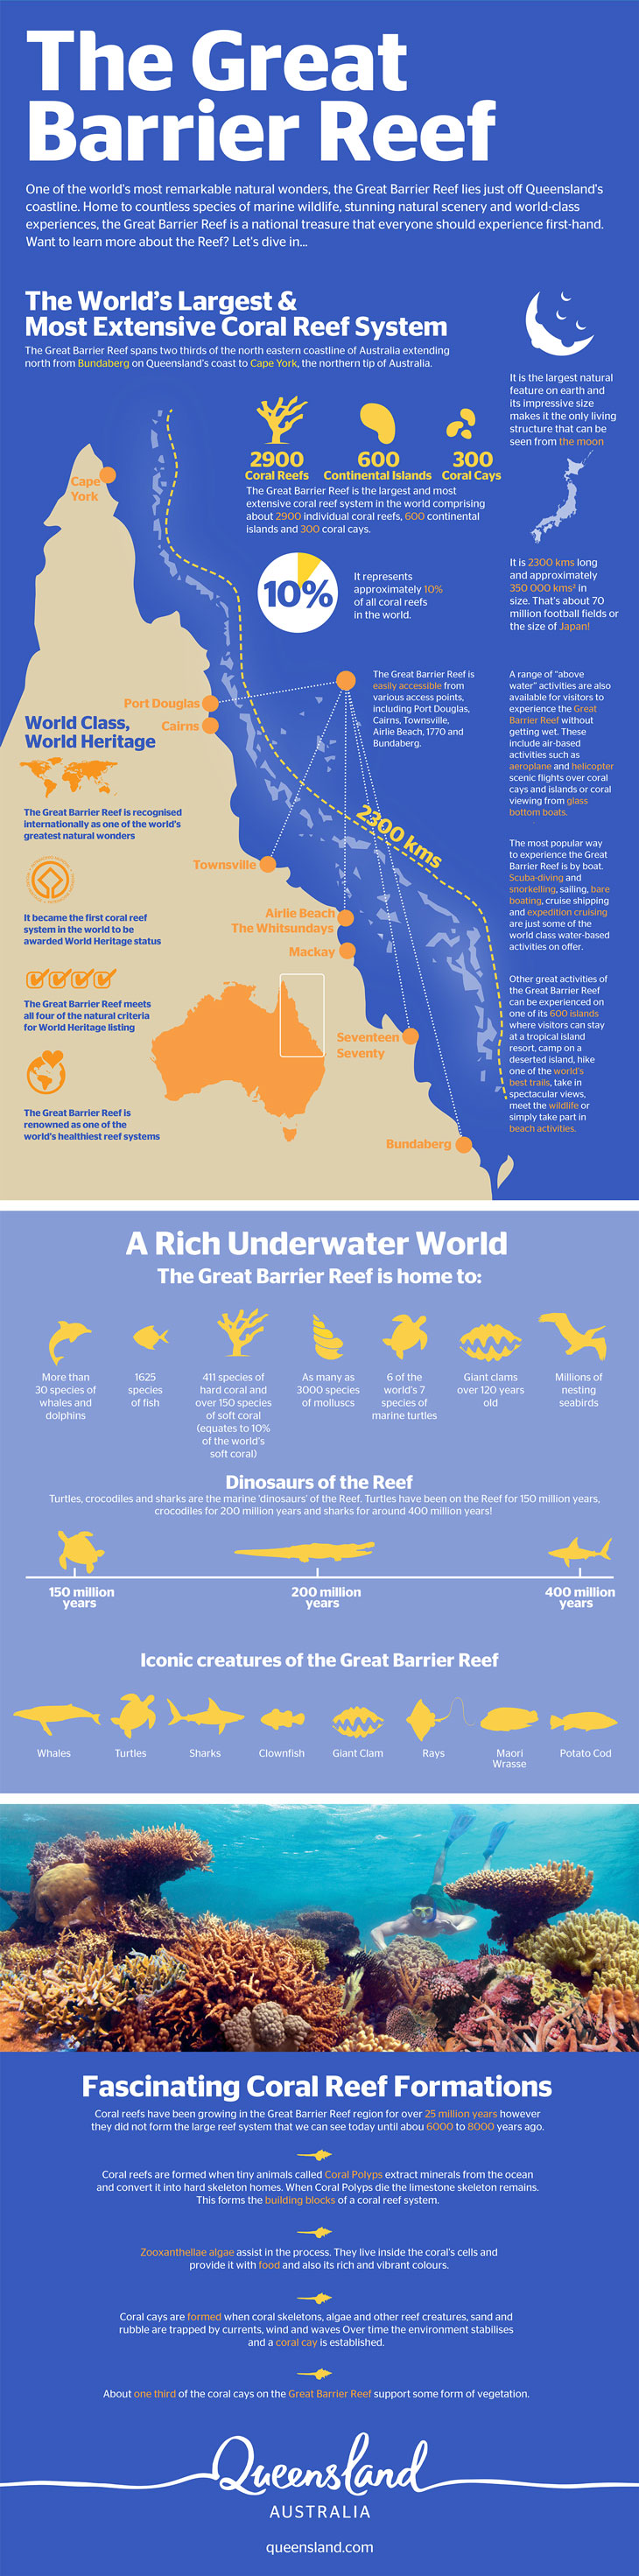 Great Barrier Reef Infographic